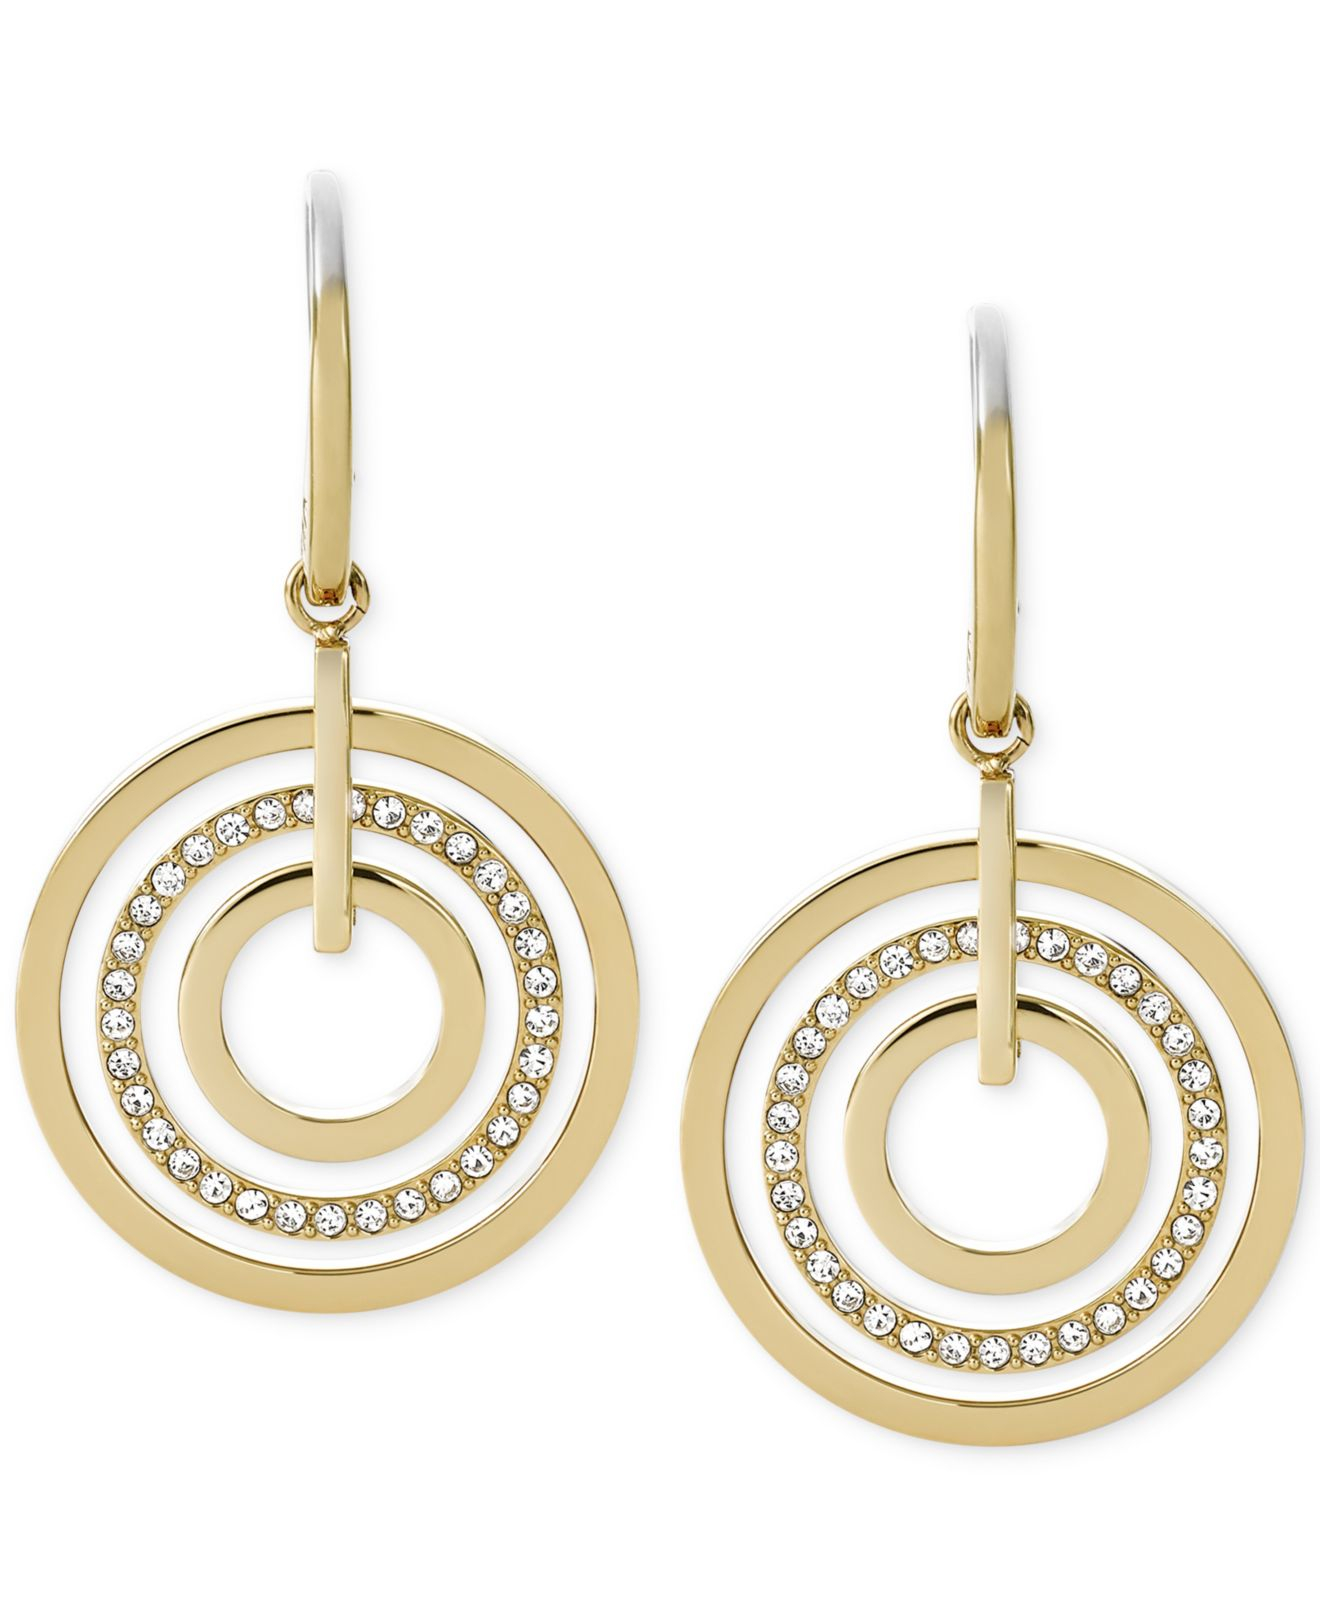 earrings studs jewellery double circular davella round oliver avella d gold bonas statement drop